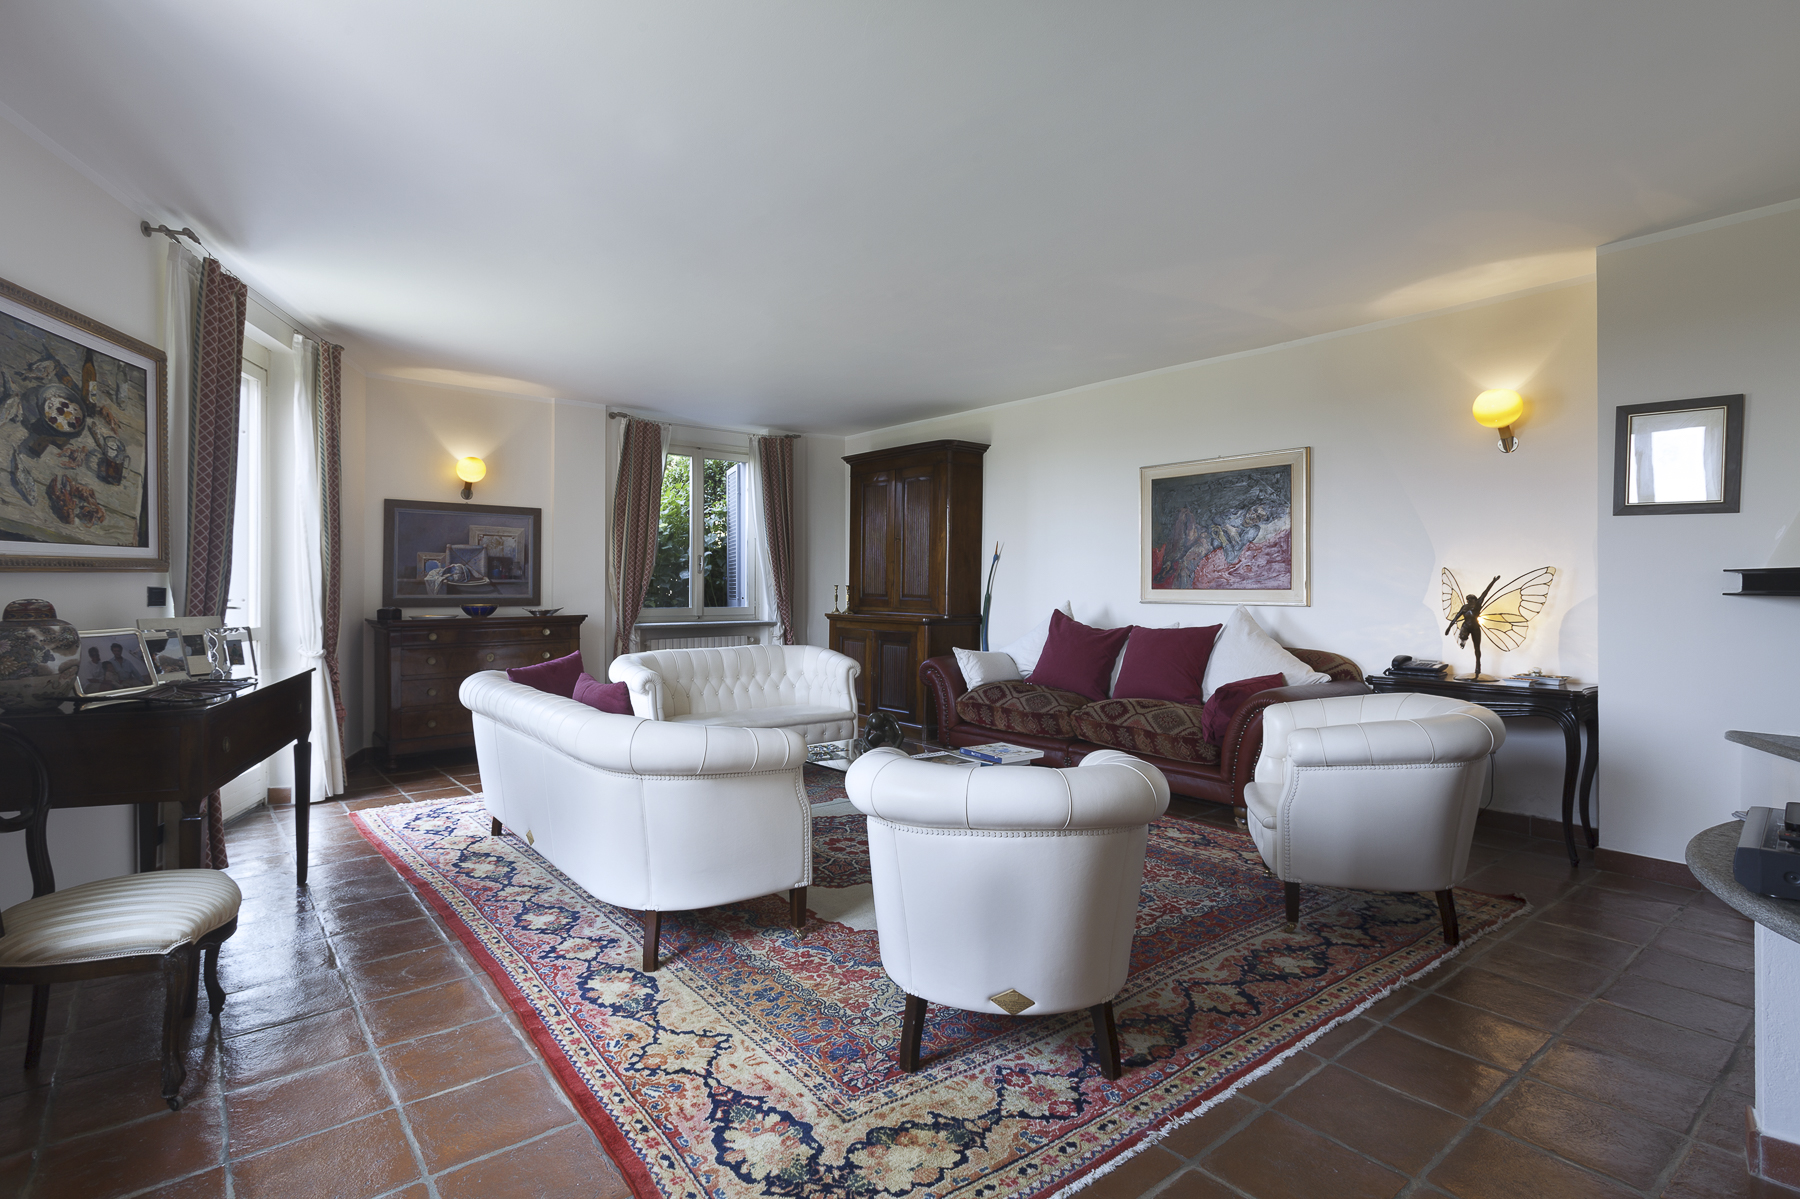 Additional photo for property listing at Detached home with private garden close to Corso Casale Via Monteu da Po Torino, Turin 10132 Italia